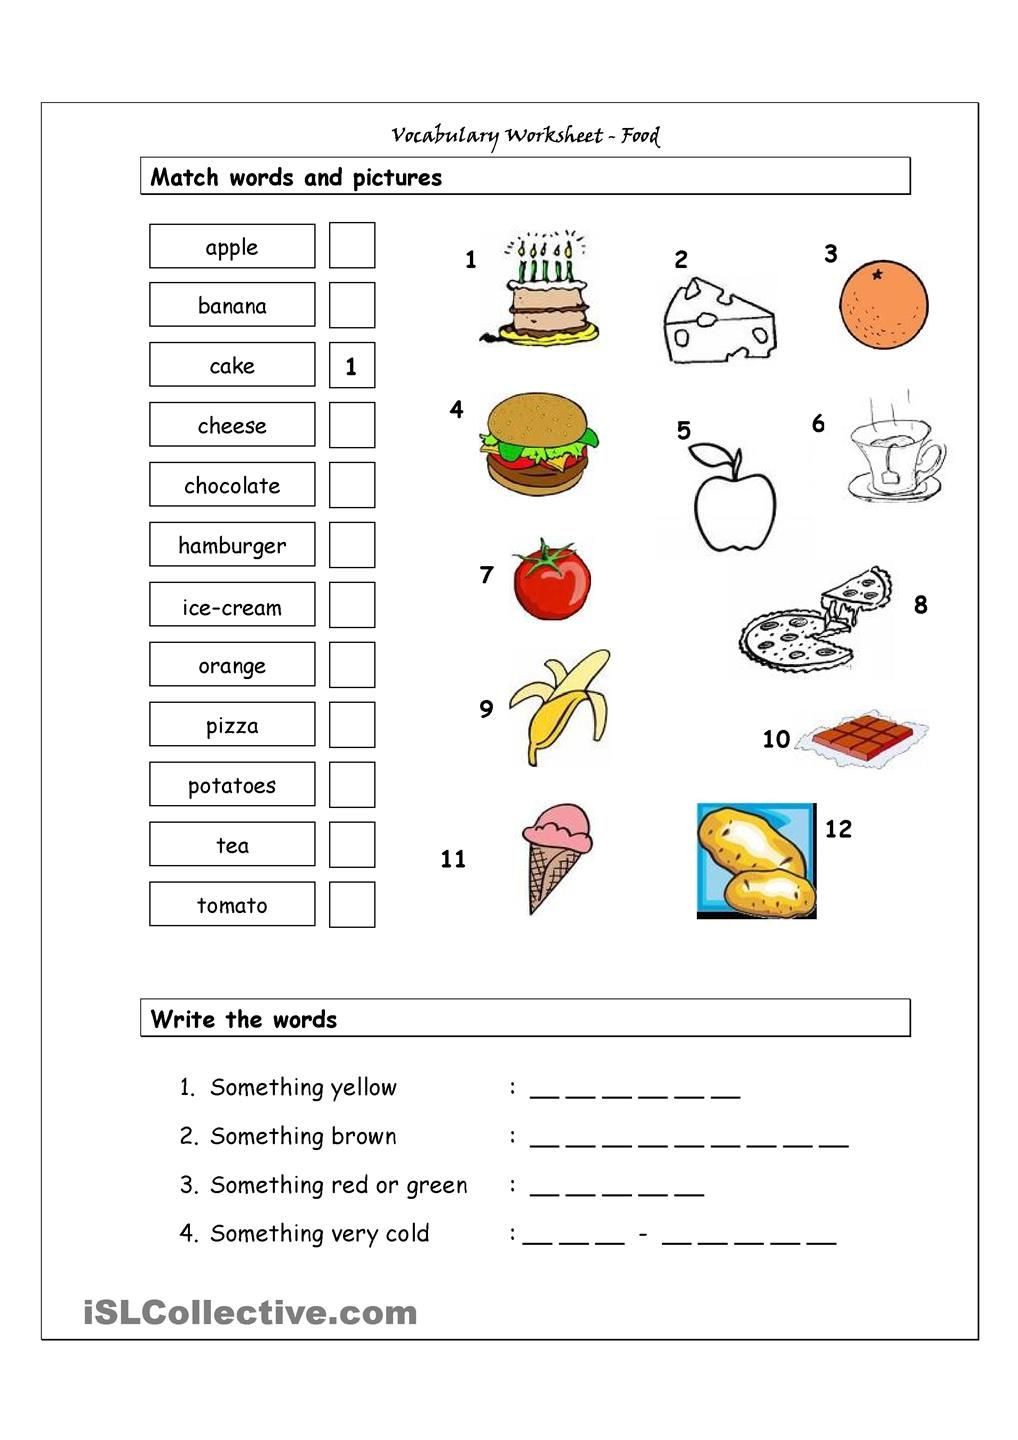 Vocabulary Worksheets for 1st Graders Vocabulary Matching Worksheet Food